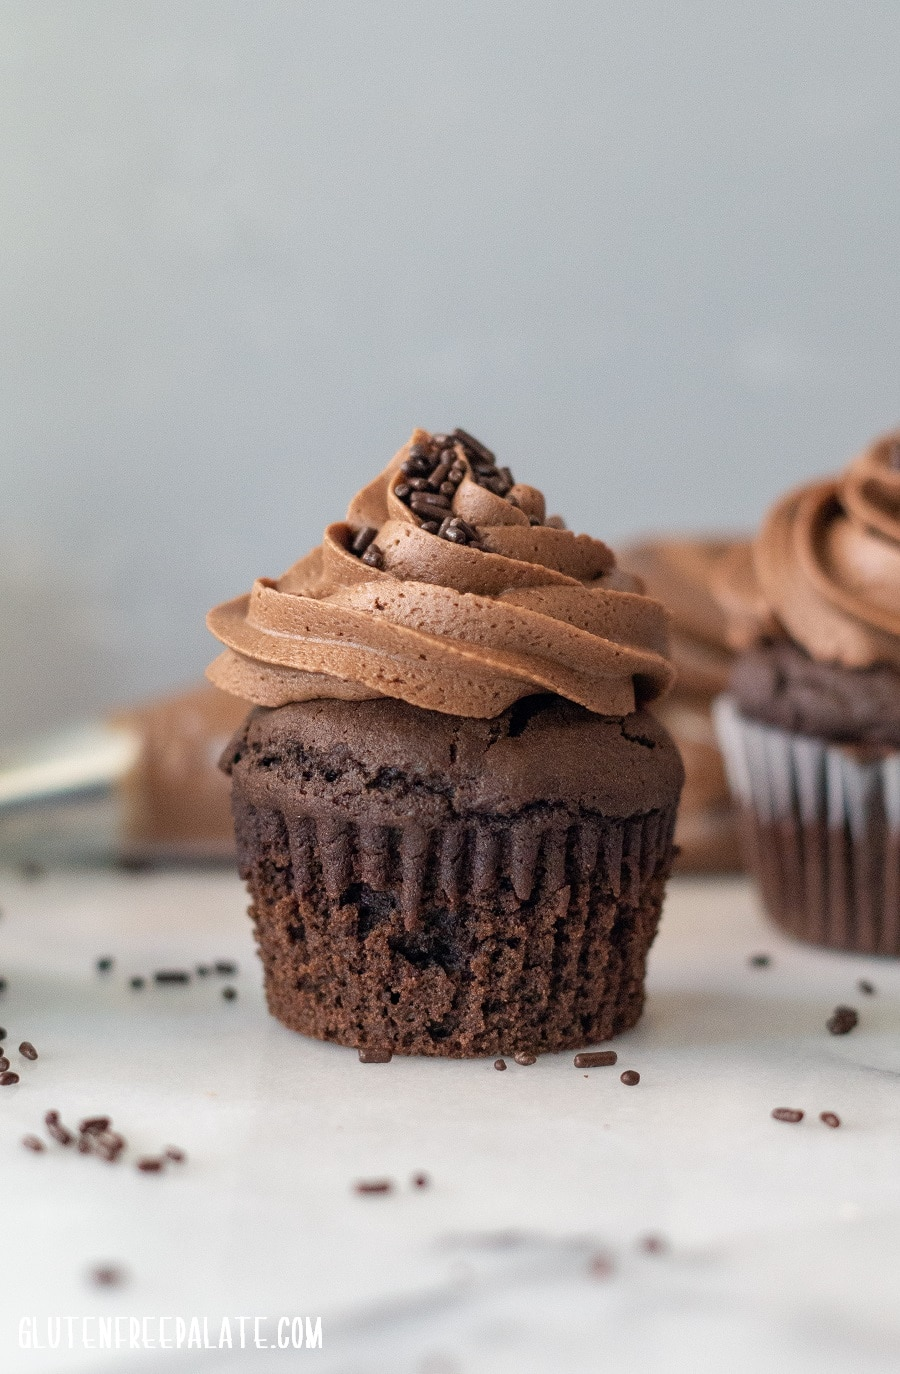 Gluten-Free Death By Chocolate Cupcakes that are rich, fudgy, and loaded with layers upon layers of chocolate.